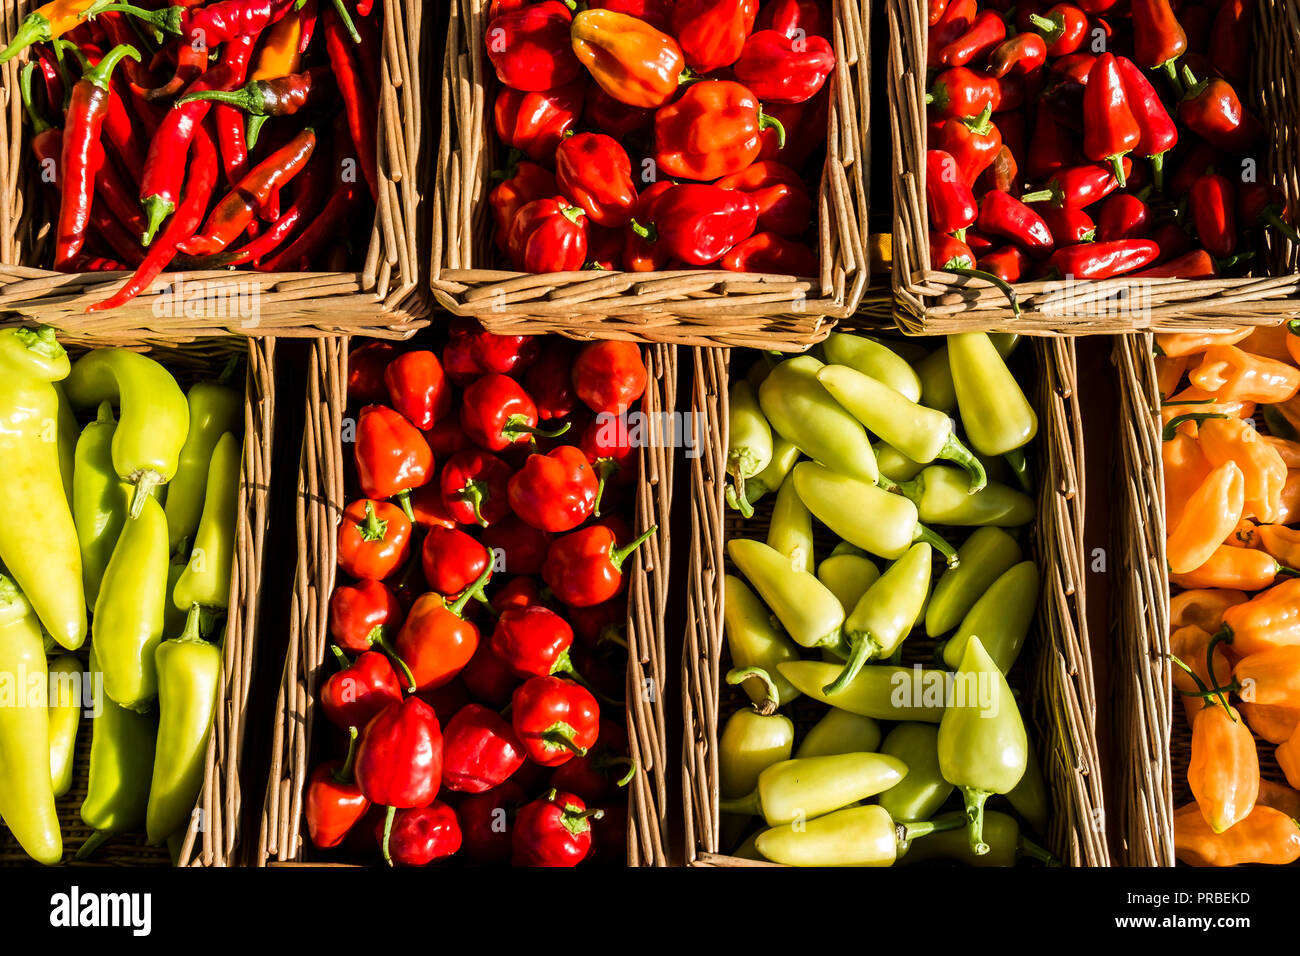 A variety of fresh chillies on a market stall. - Stock Image